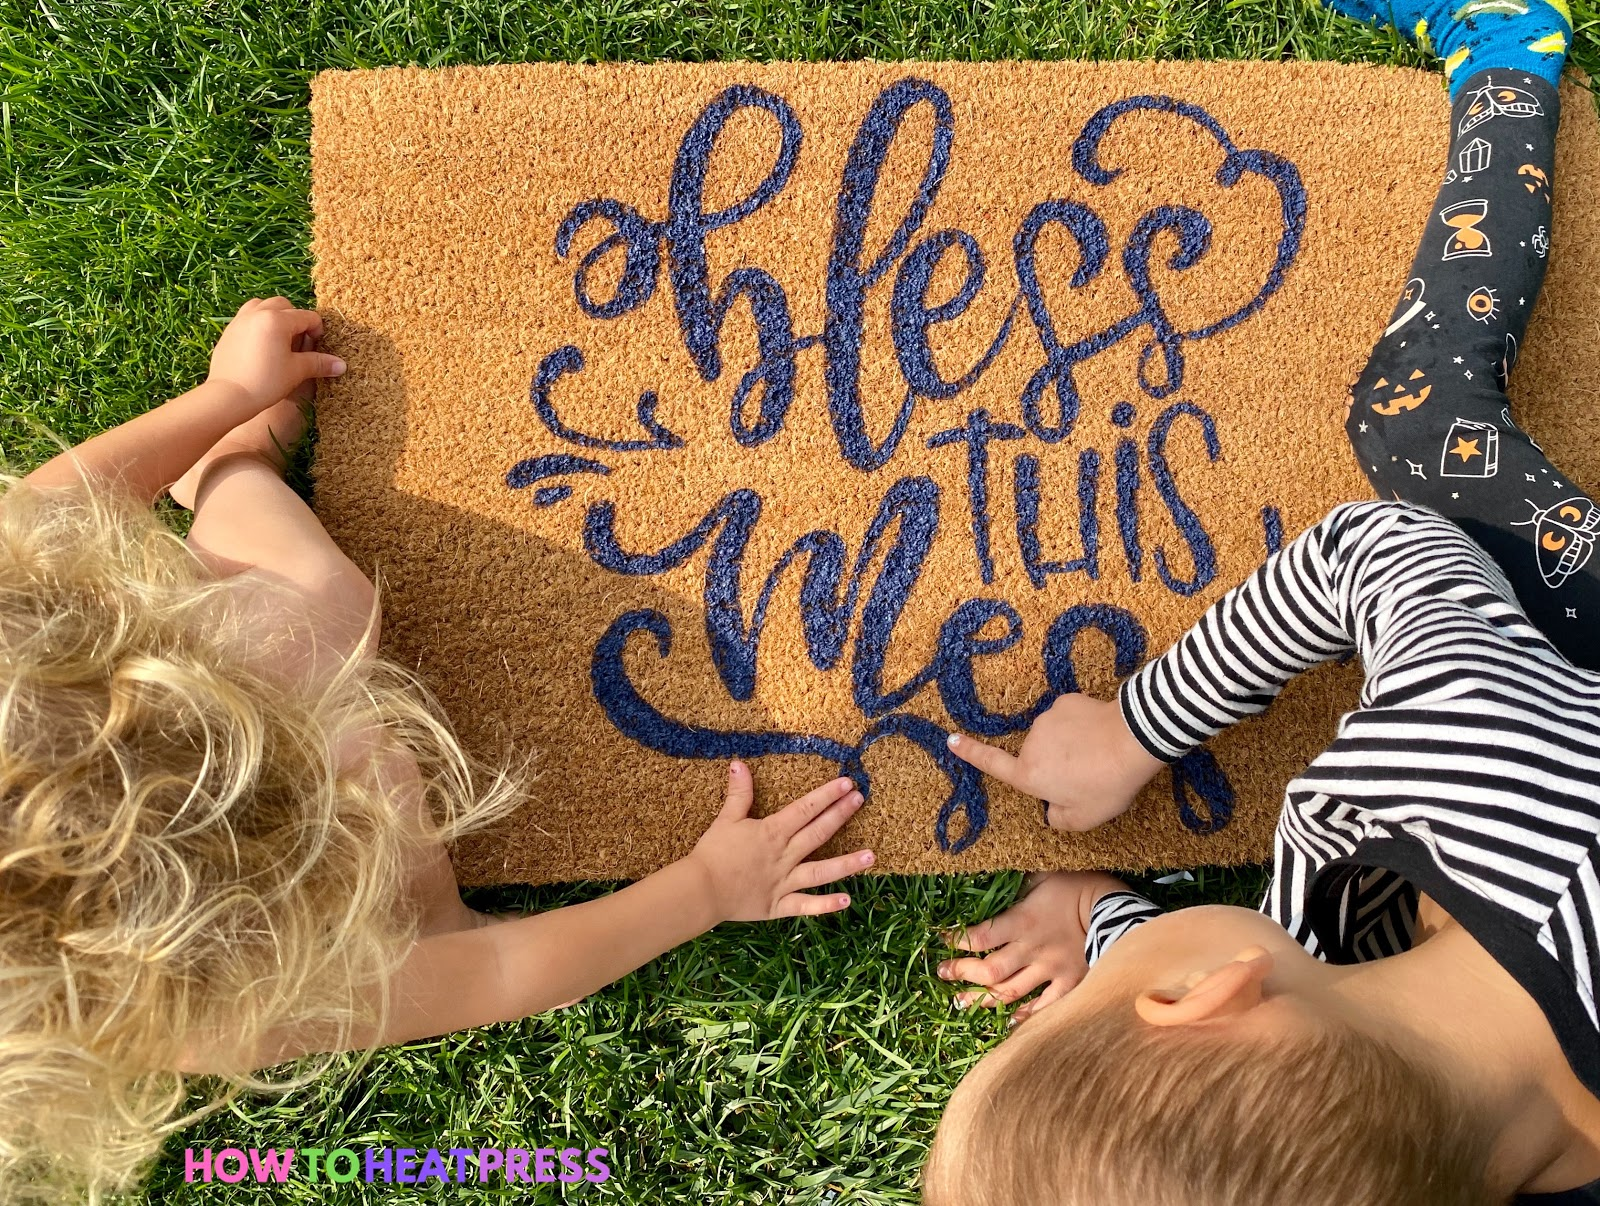 Tan DIY doormat with blue writing